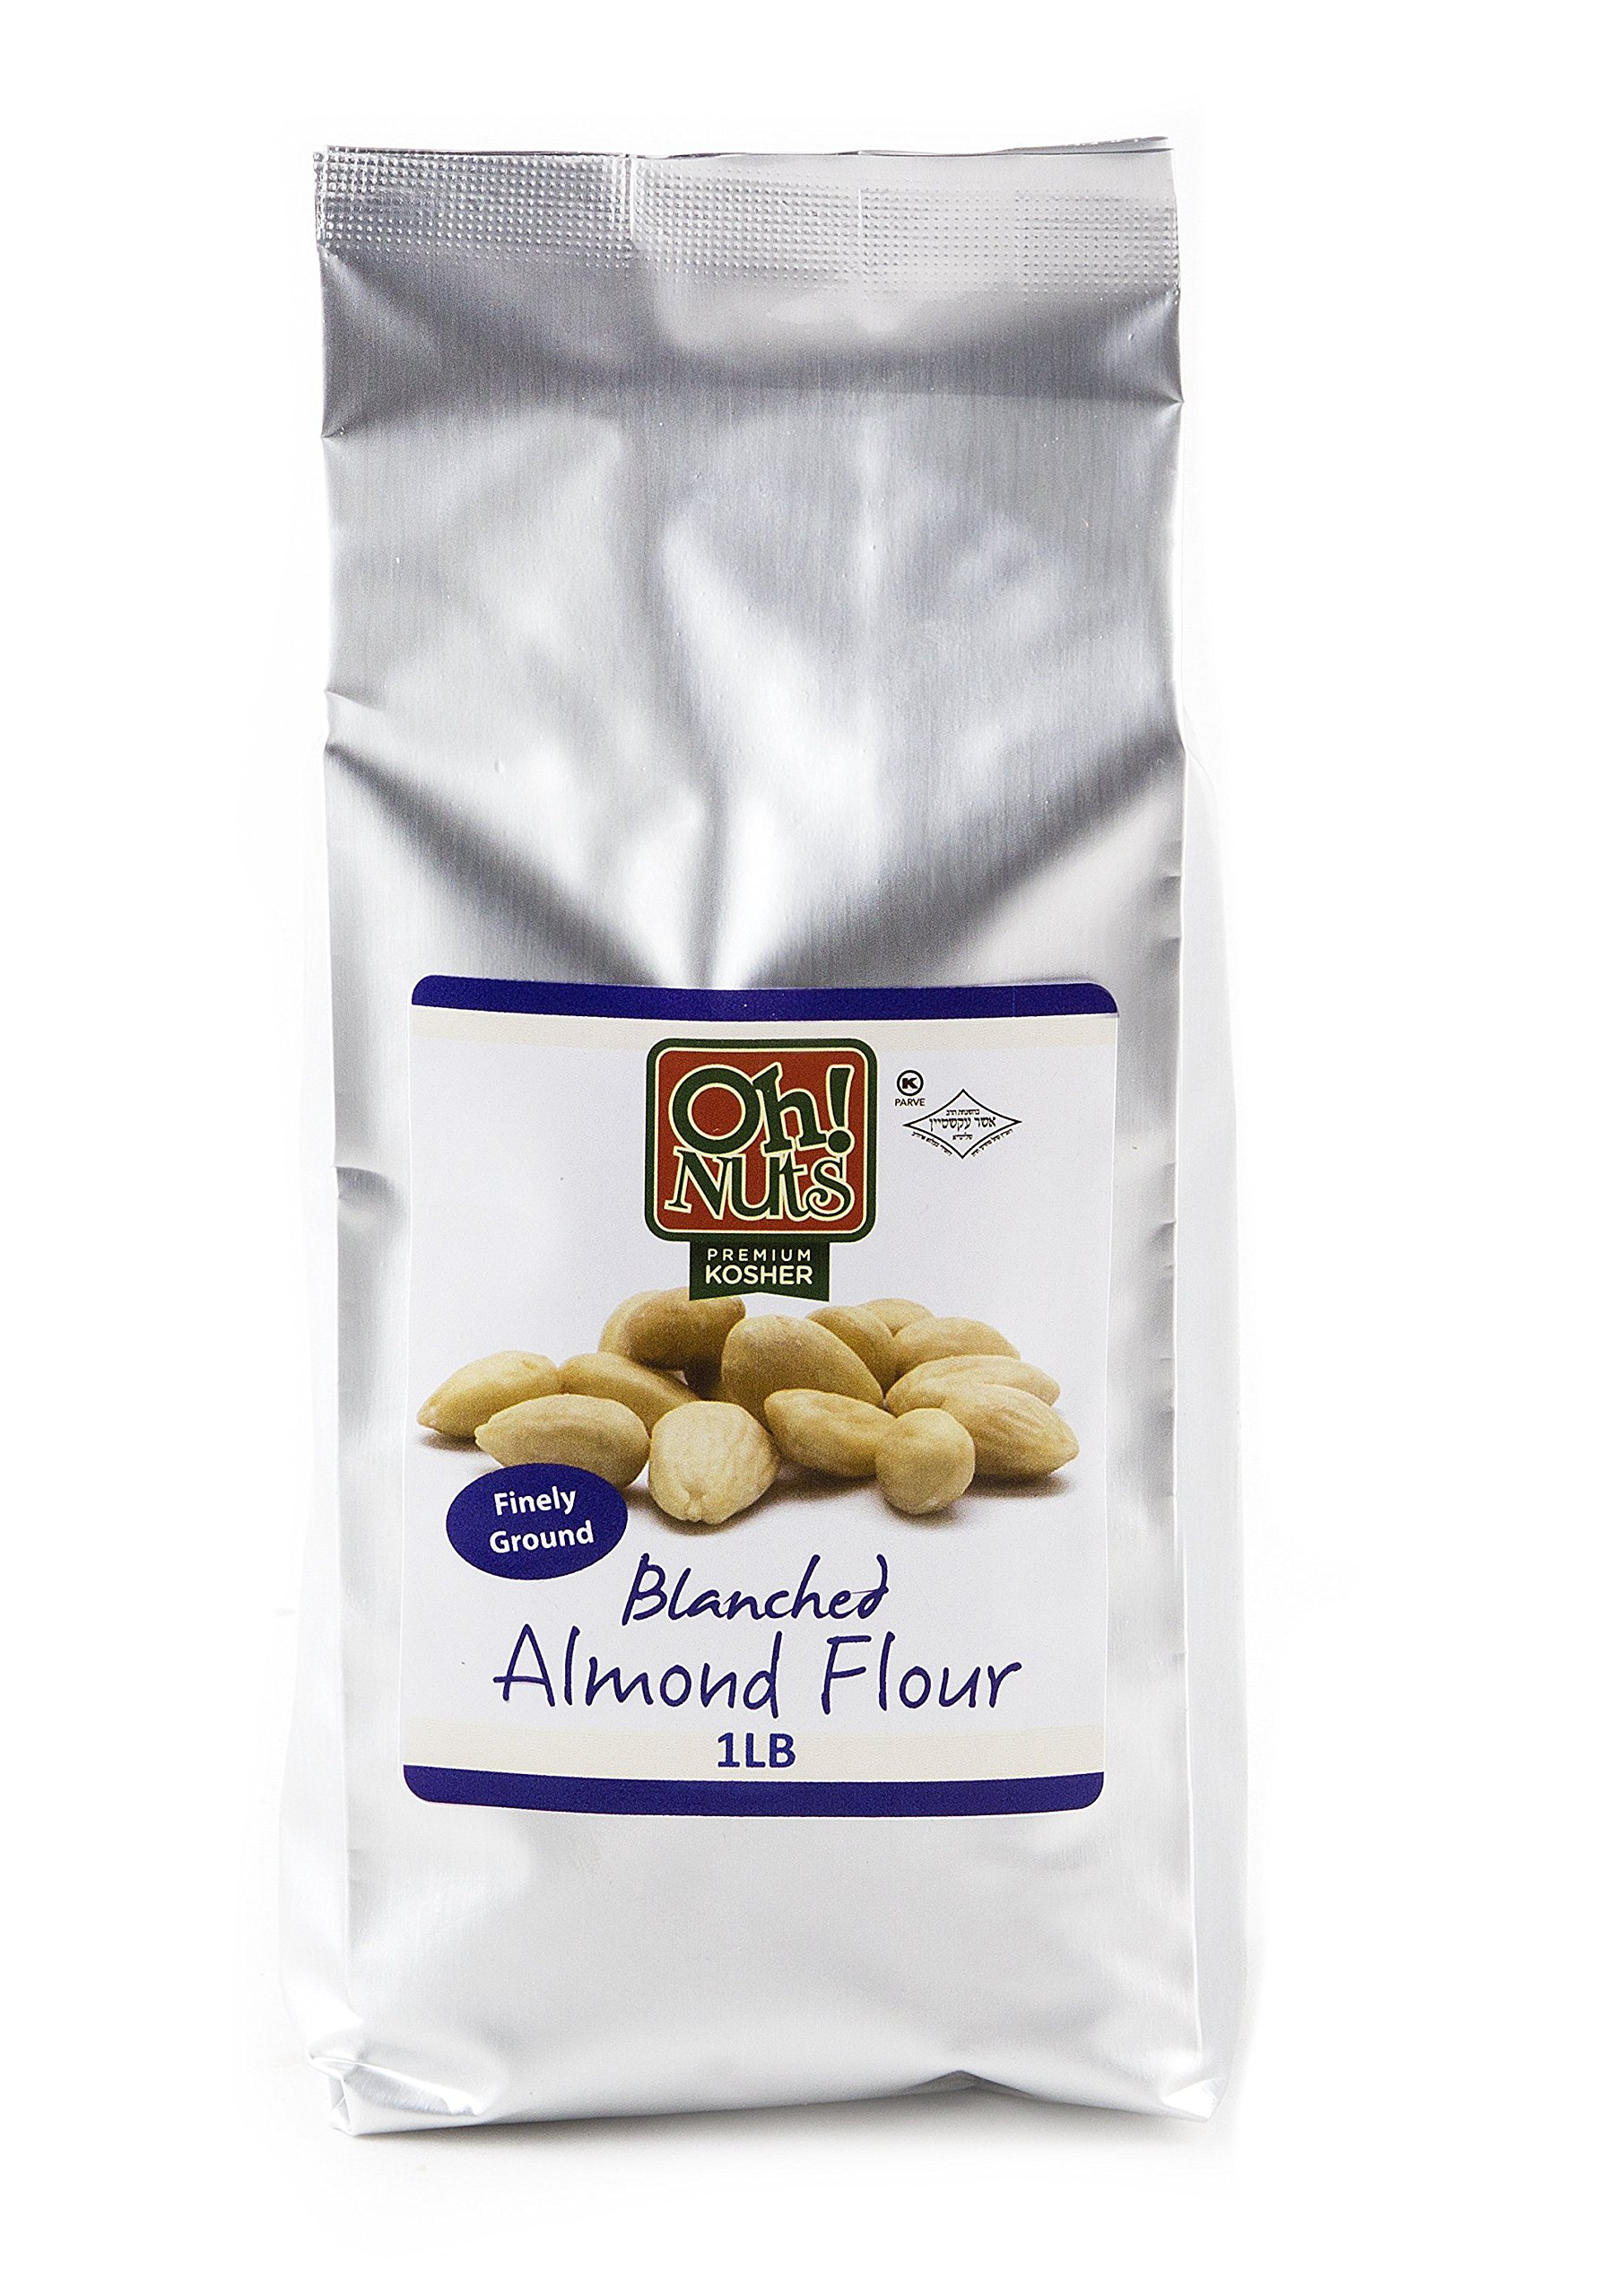 1LB Almond Flour Blanched All Natural, Extra Fine Ground Almond Meal - Oh! Nuts (1 LB Bag Blanched Almond Flour)